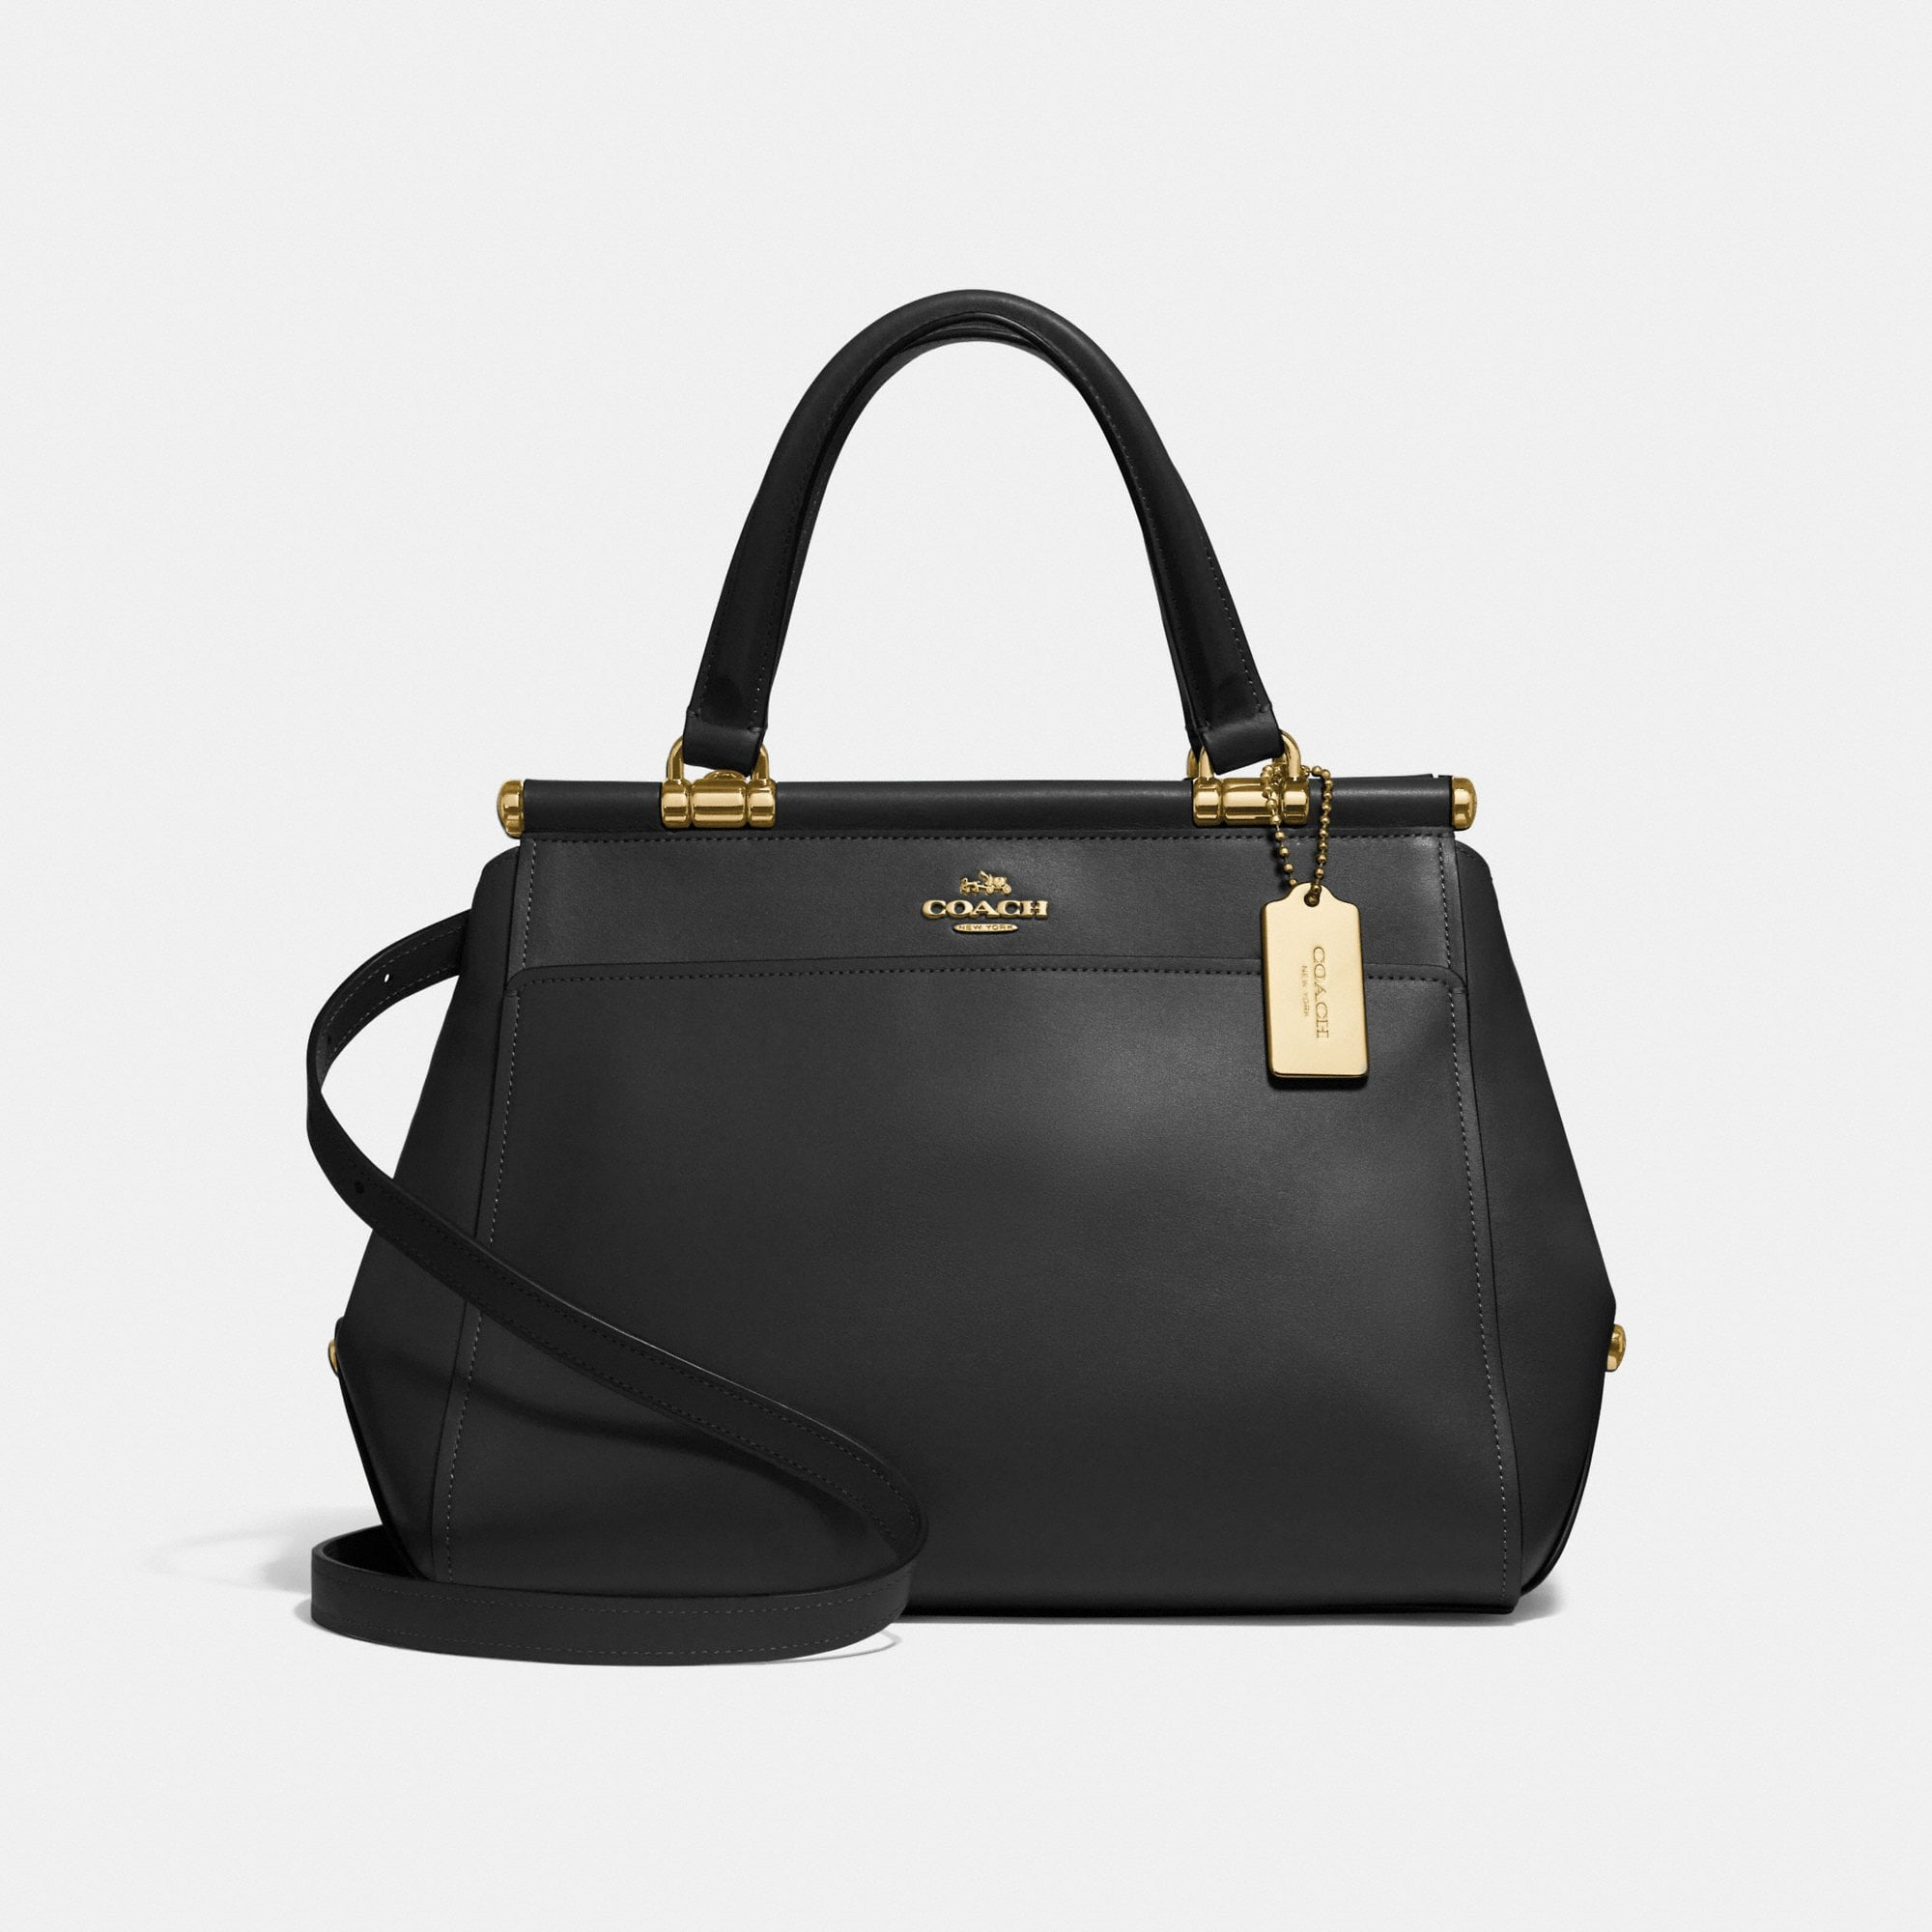 Coach Grace Refined Calf Leather Bag in Black